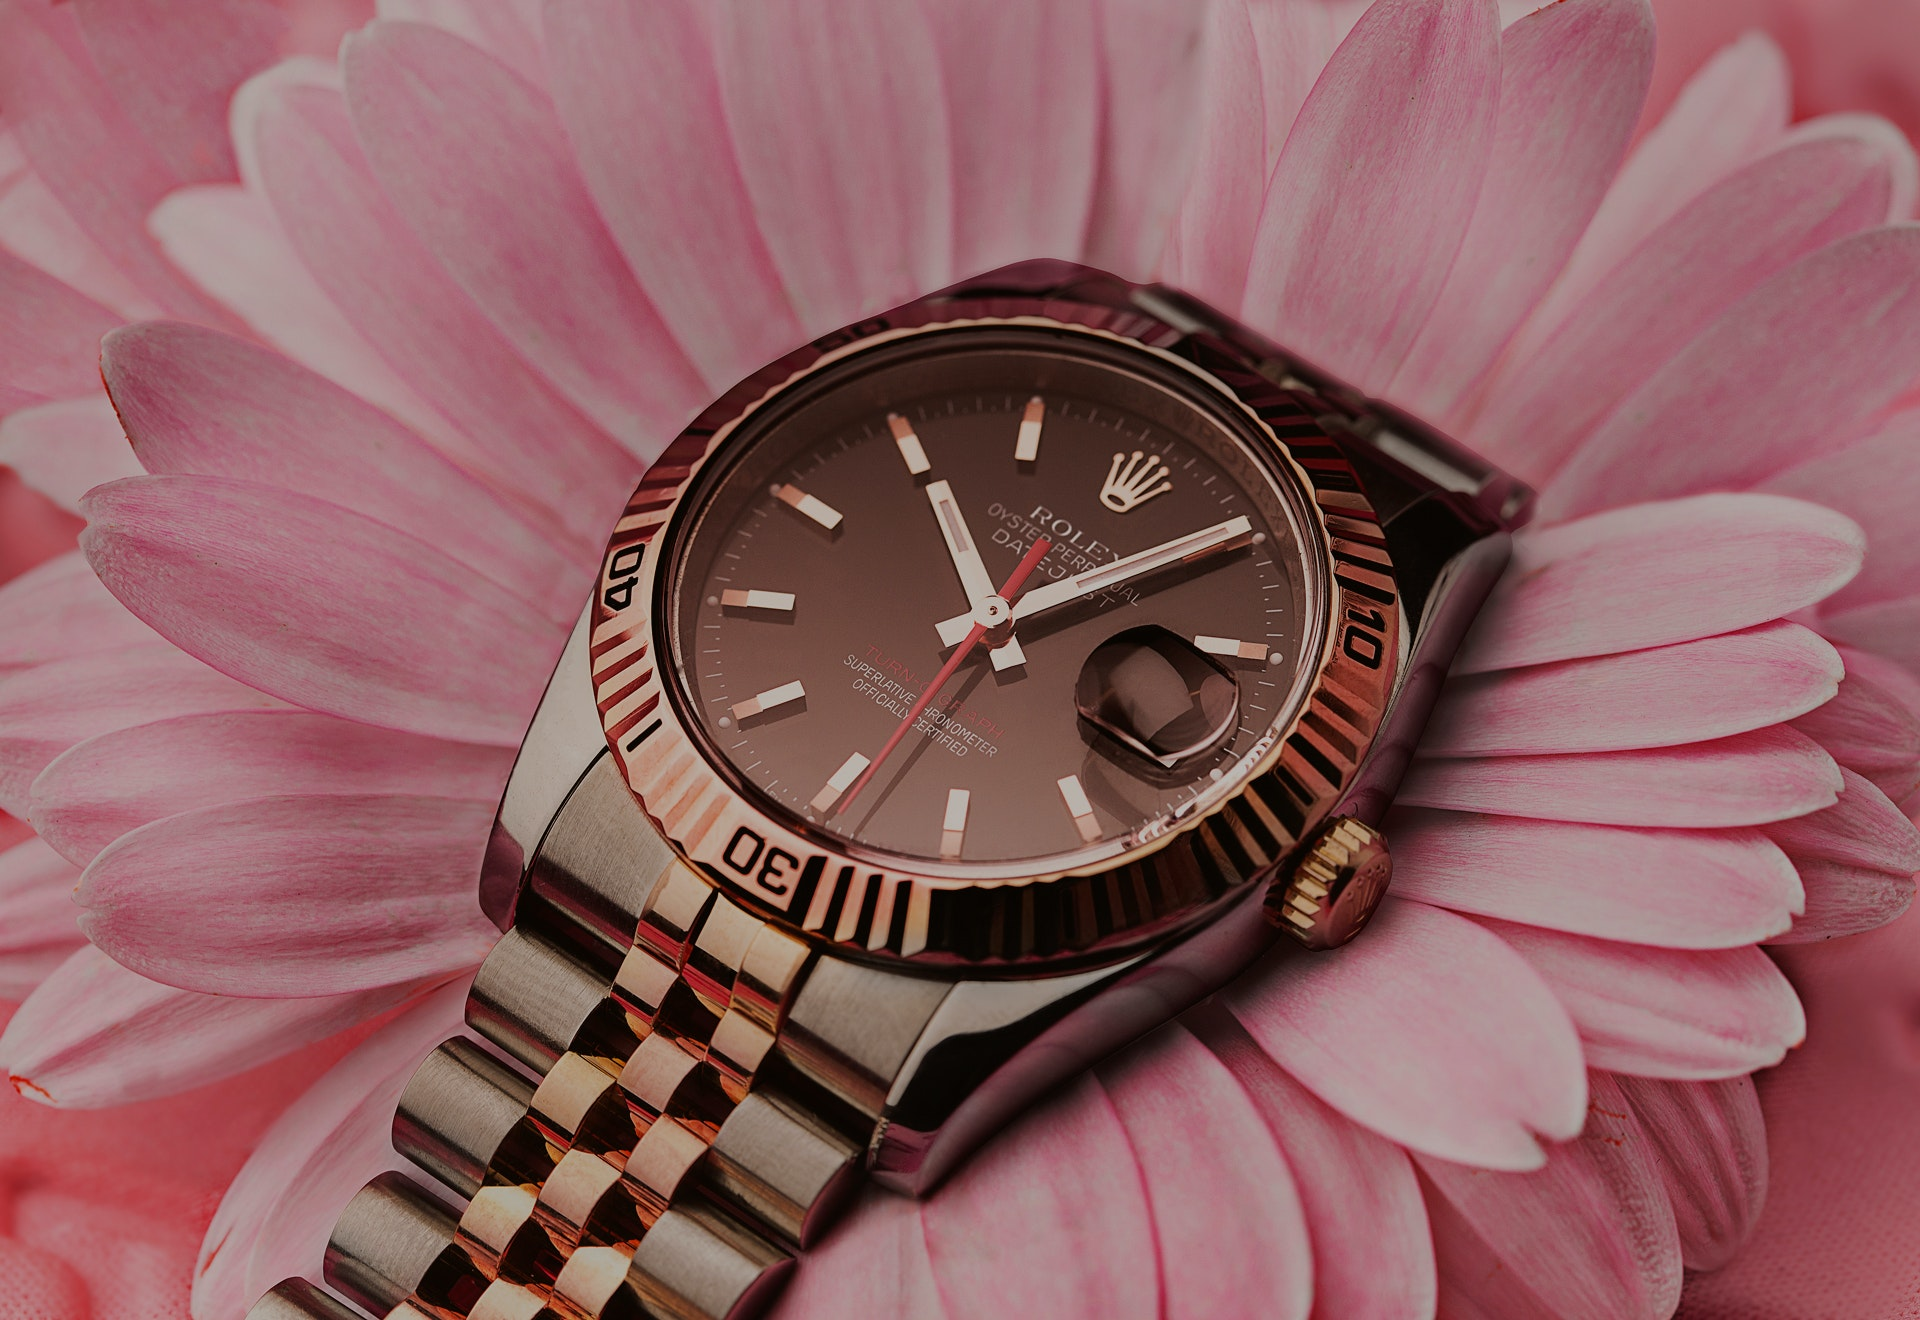 Top 10 Iconic Women's Watches